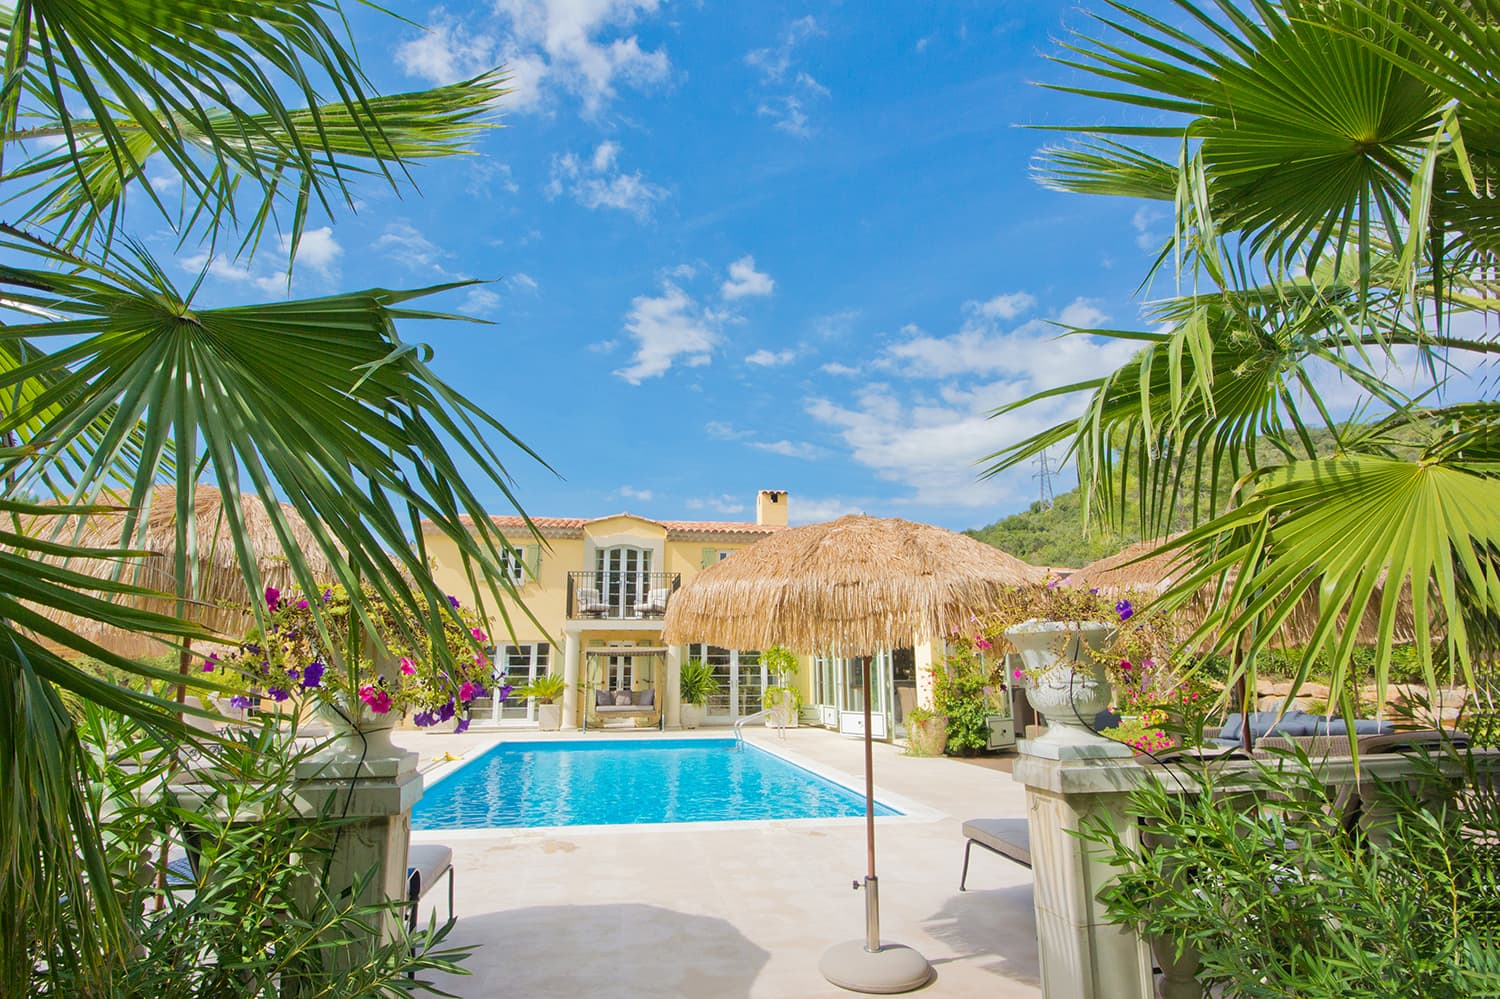 Holiday villa in Provence Côte d'Azur with private, heated pool